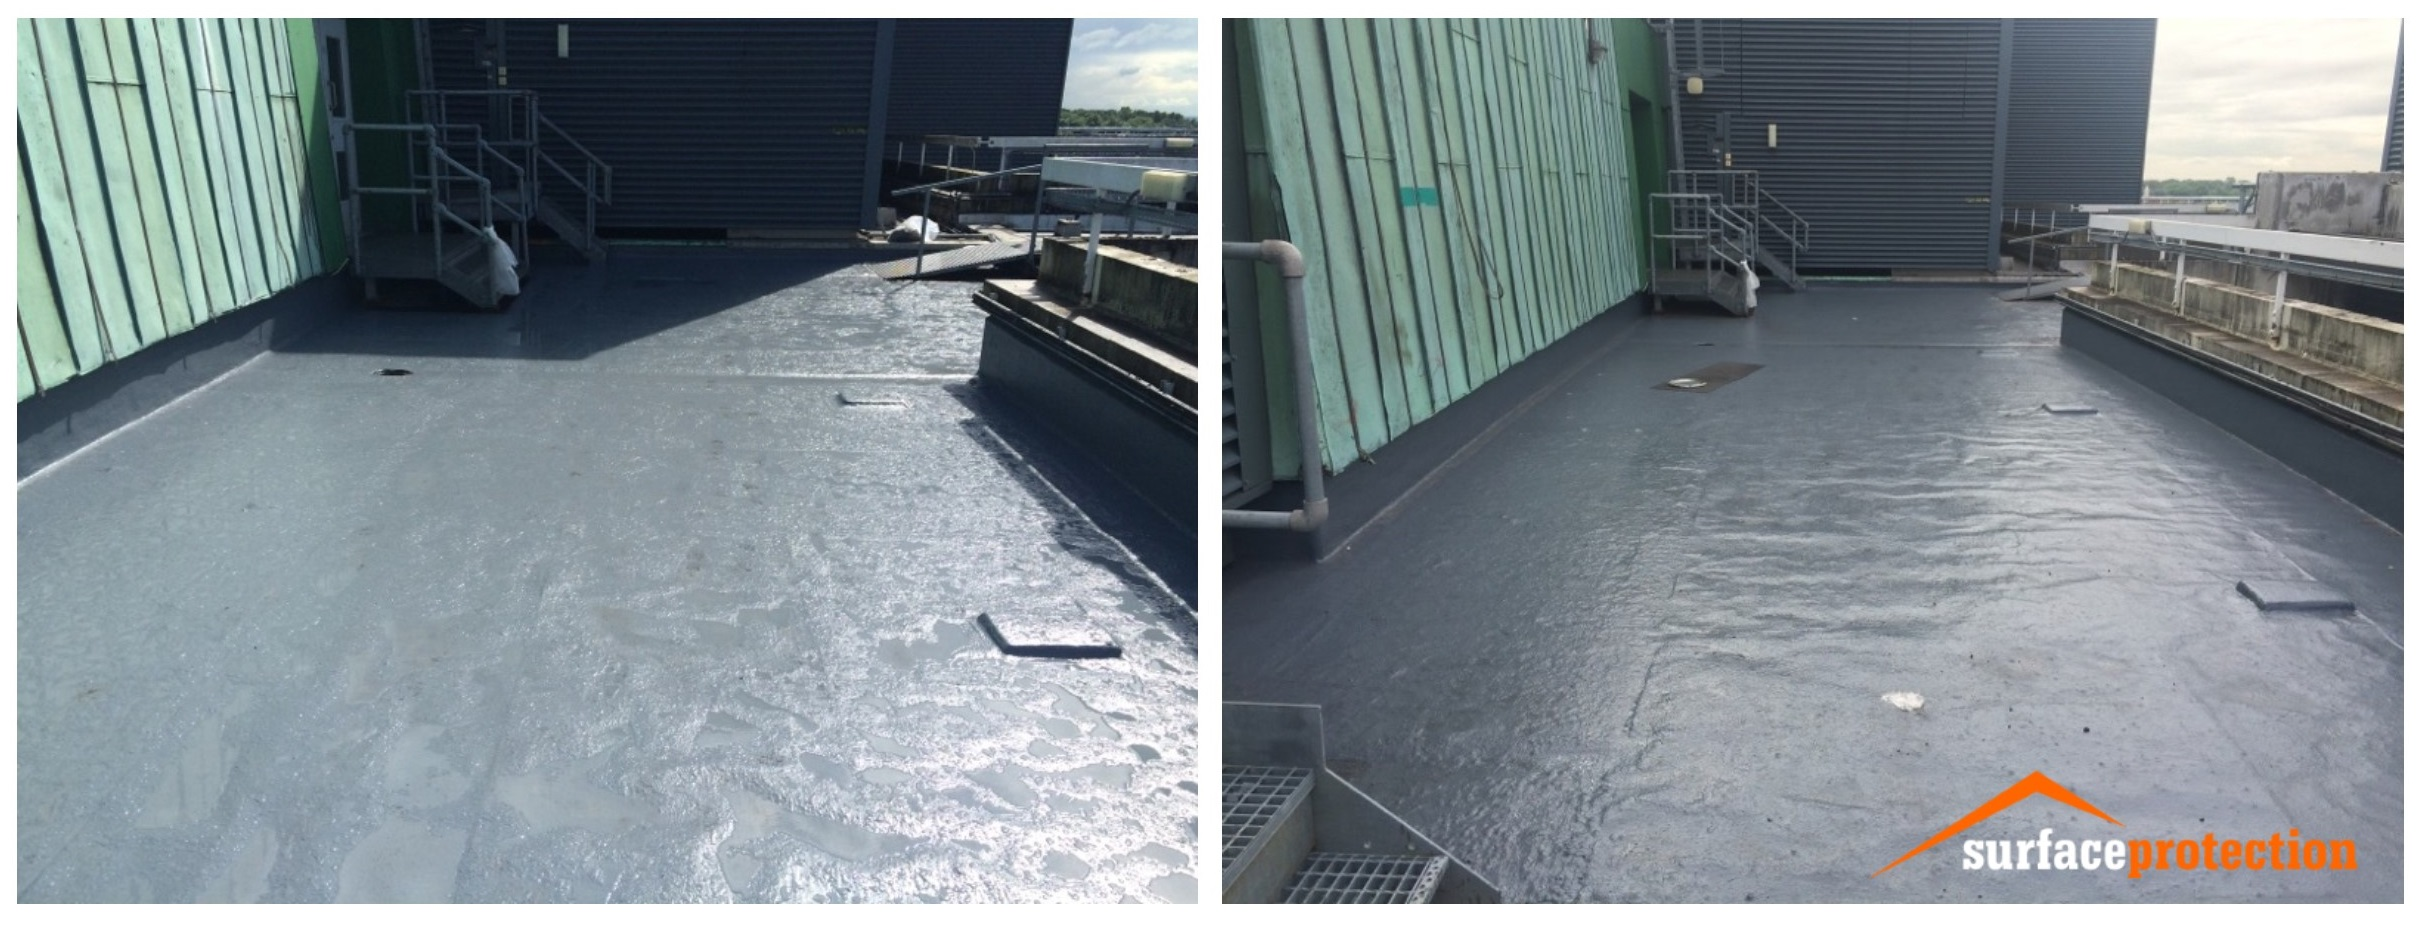 Decothane Ultra Surface Protection Part 2